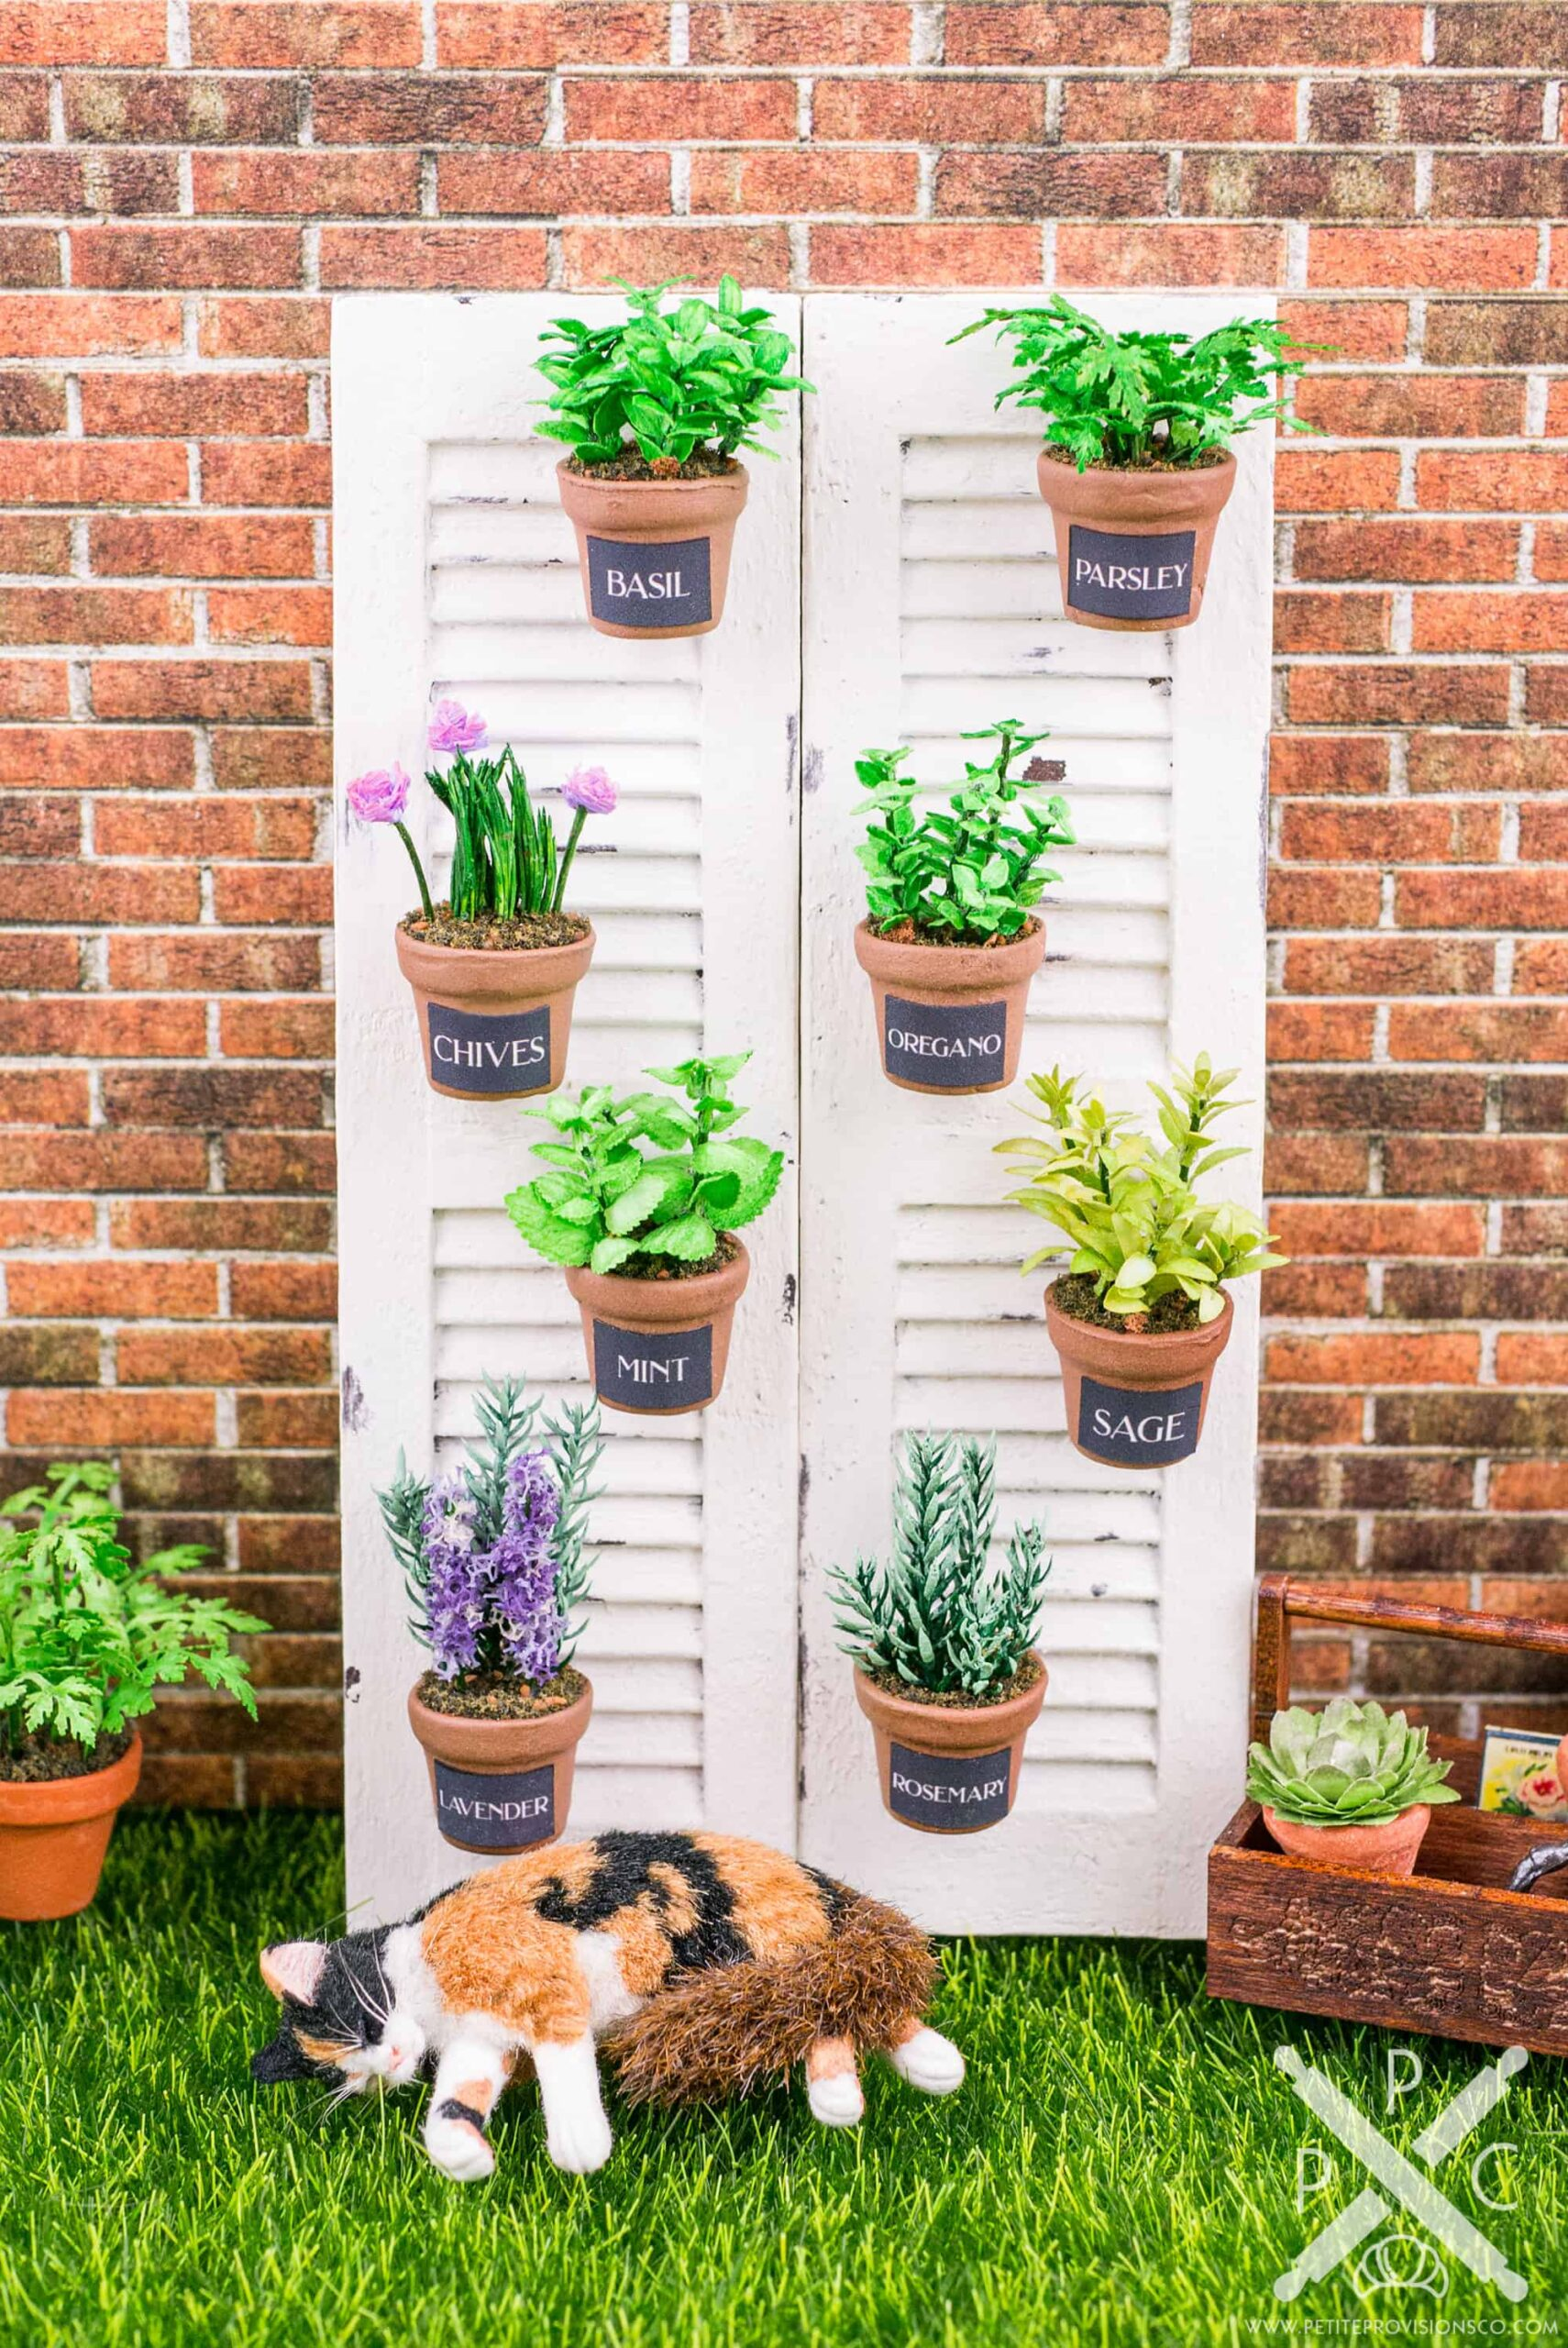 Dollhouse miniature vertical herb garden on repurposed shutters by miniature artisan Erika Pitera of The Petite Provisions Co.